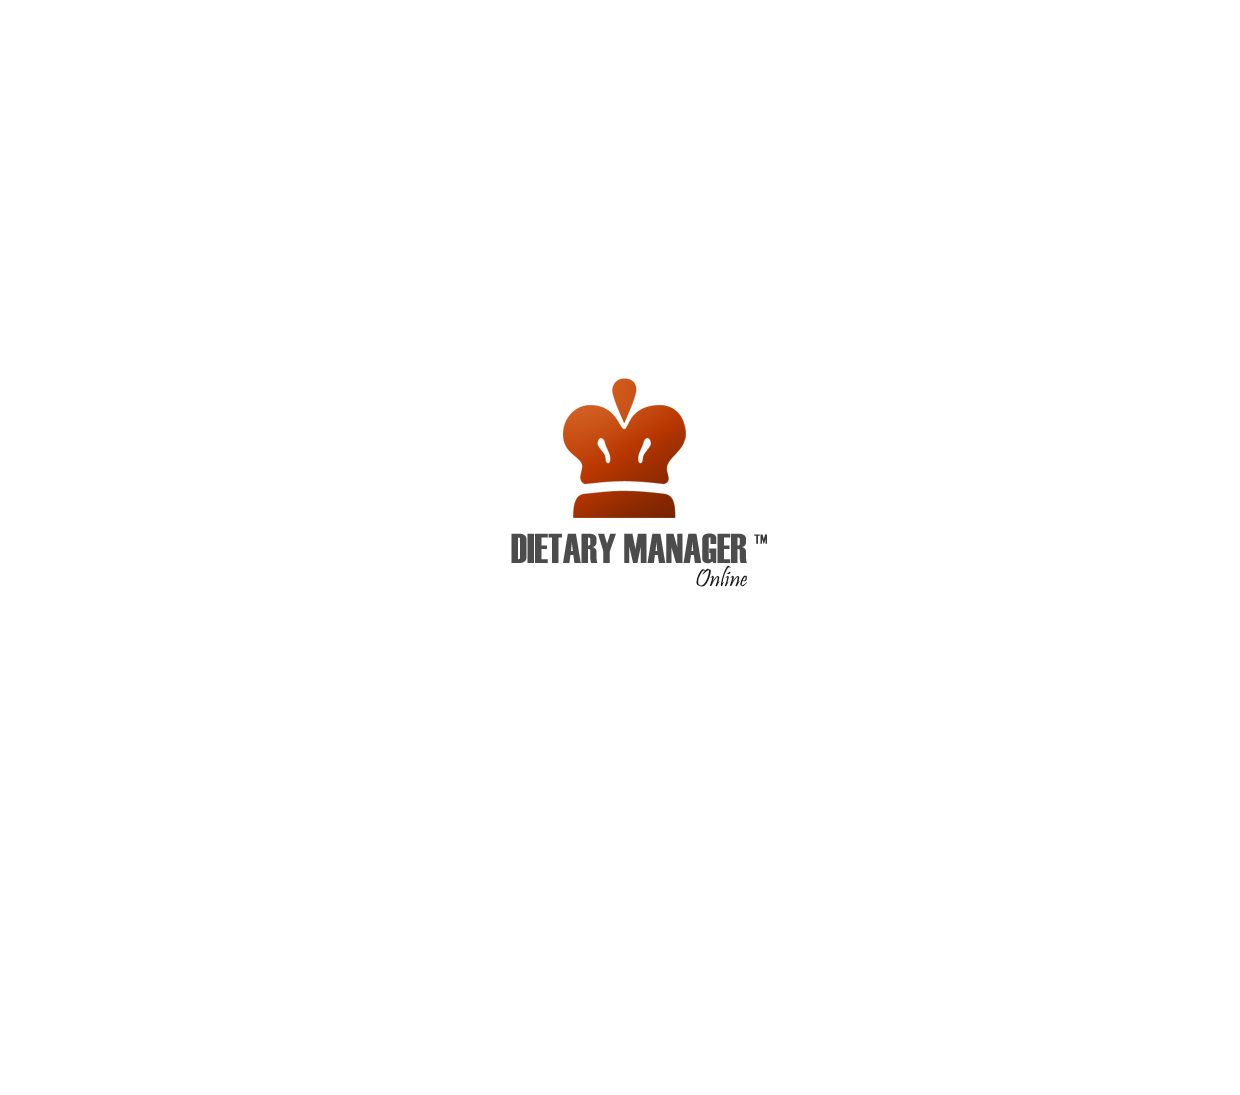 Logo Design by Tathastu Sharma - Entry No. 35 in the Logo Design Contest Fun Logo Design for Dietary Manager Online.